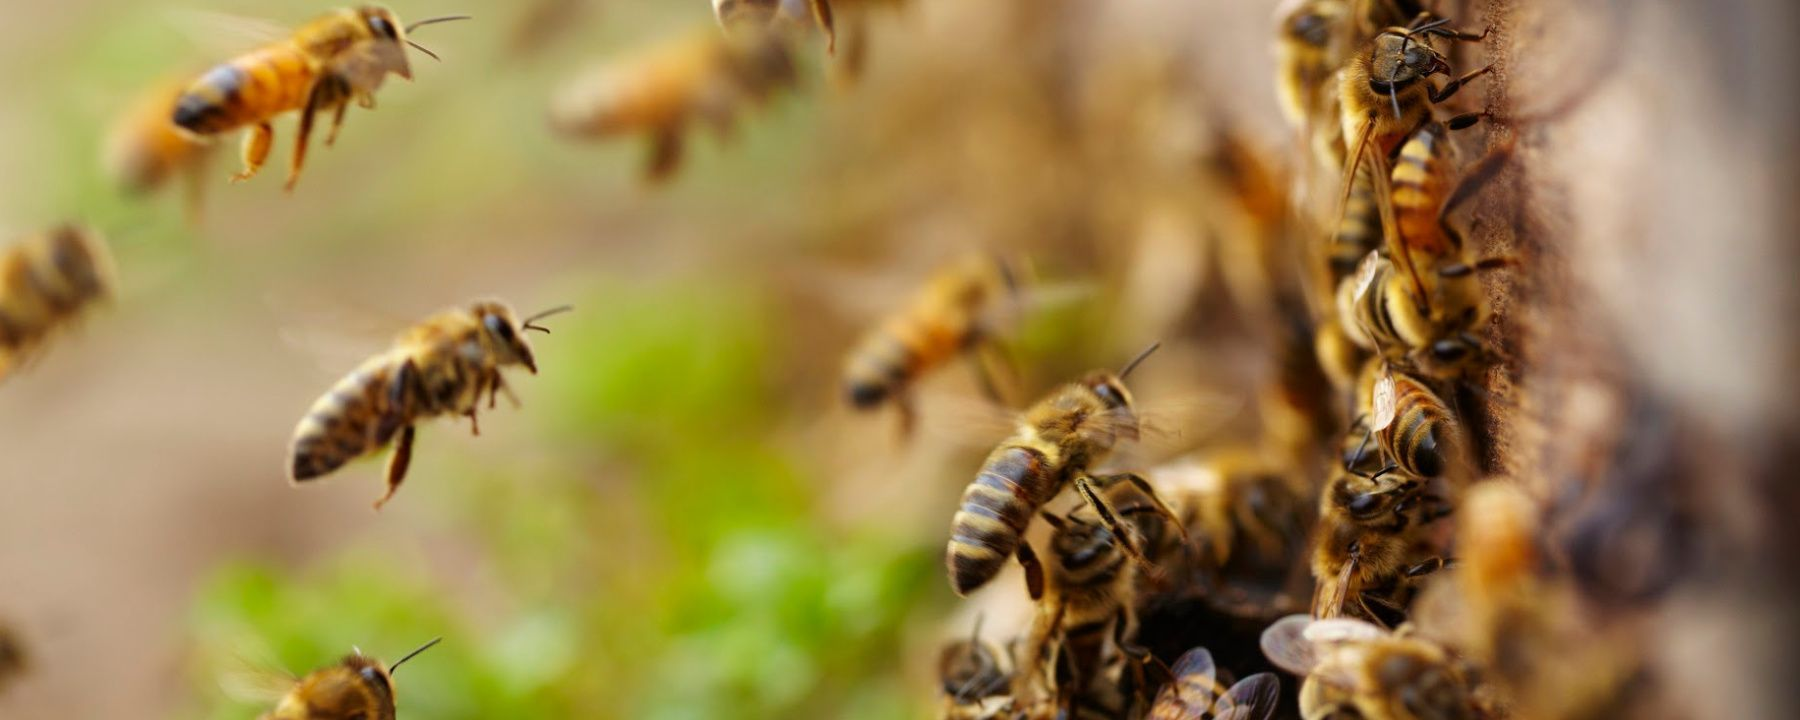 Engineered Microbe in Bees' Guts Fends off Deadly Varroa Mite